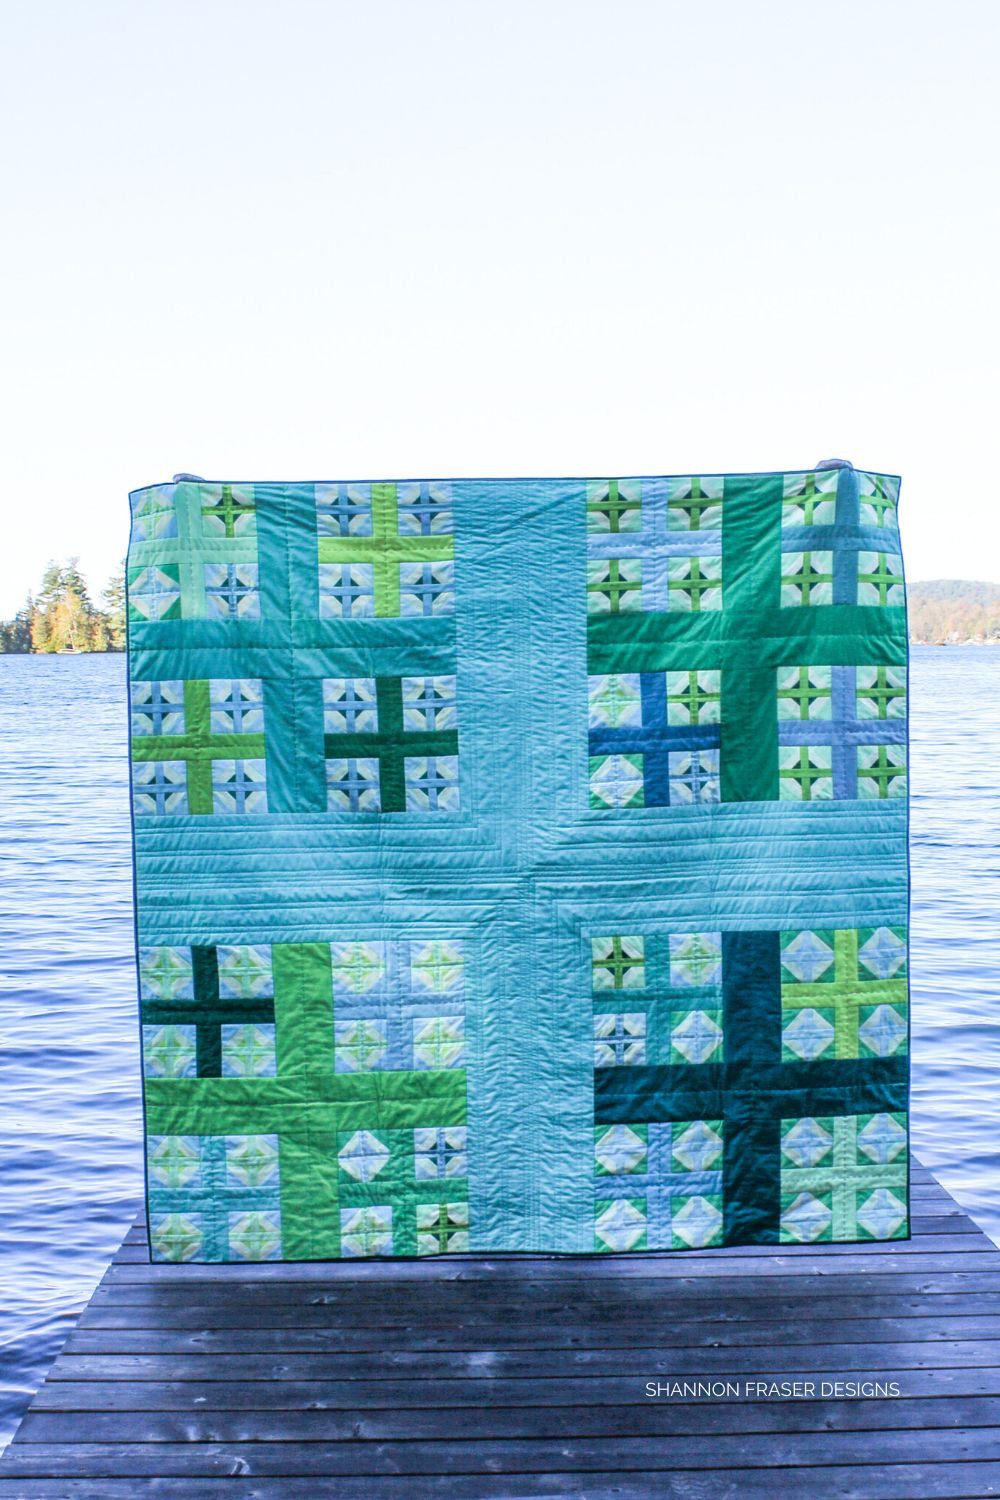 Plus Infinity Quilt in the wild on a dock in front of lake in the summer time | Shannon Fraser Designs